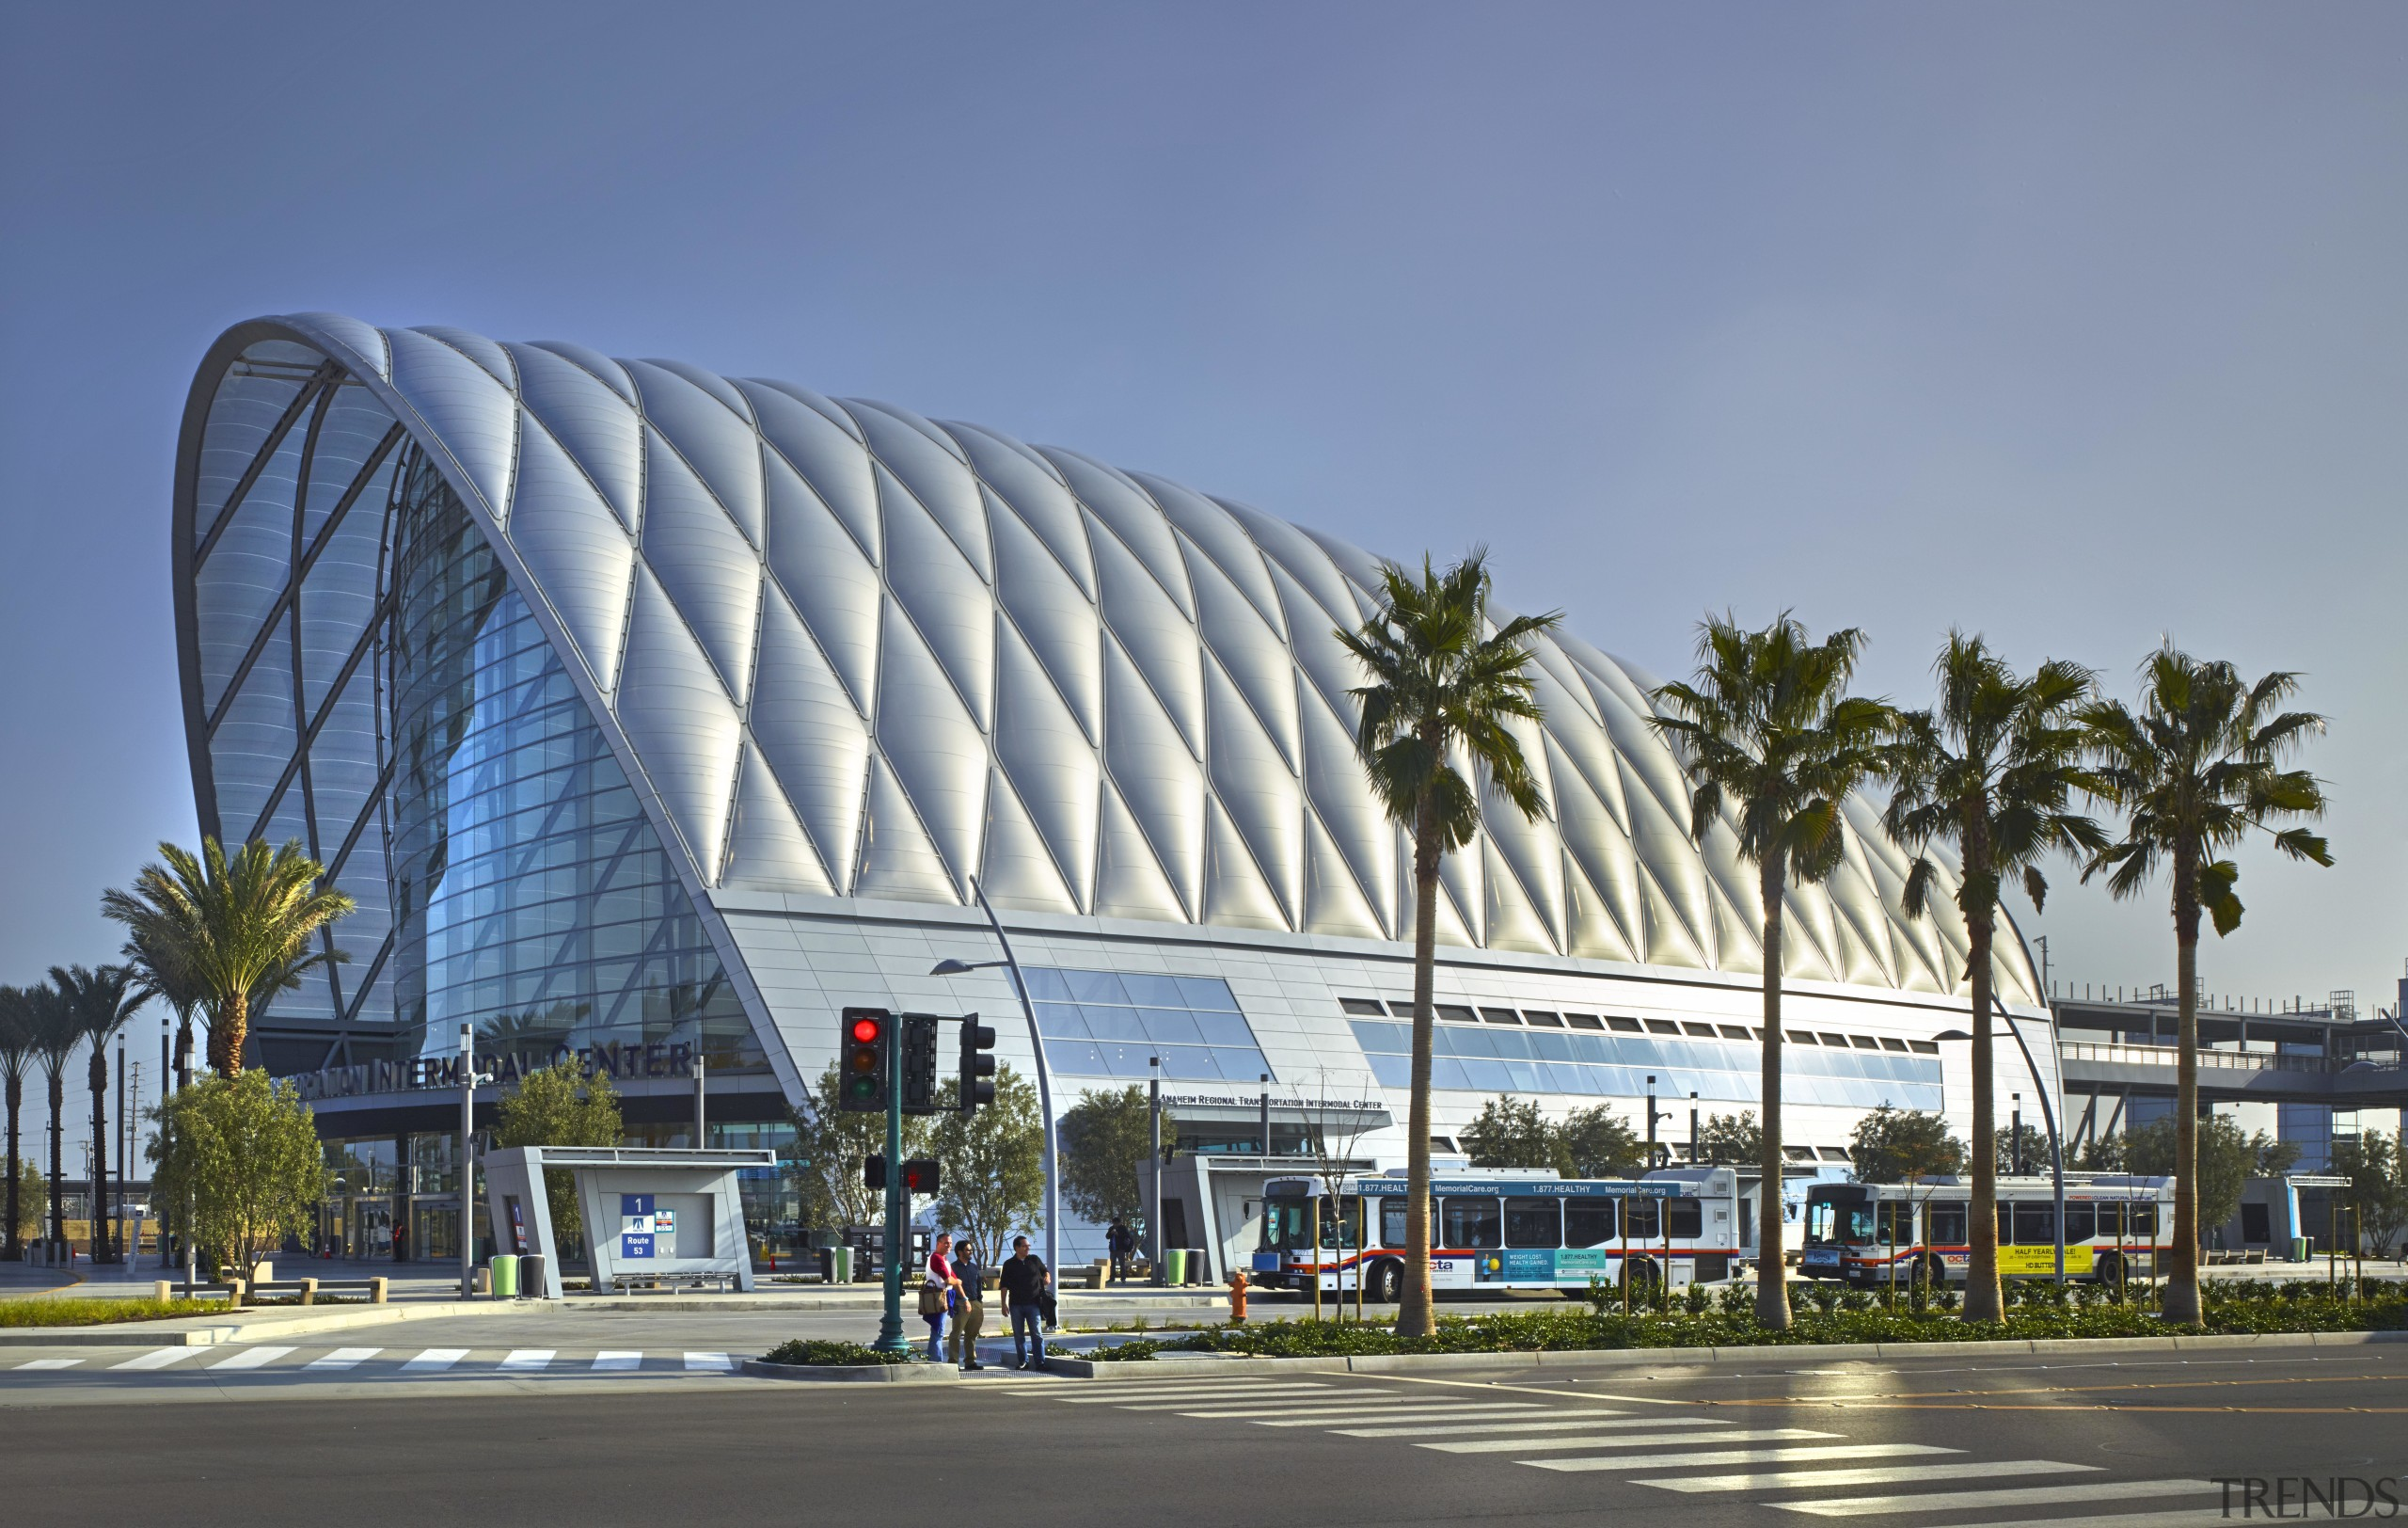 The new ARTIC transit hub in Anaheim is architecture, building, city, convention center, corporate headquarters, daytime, landmark, metropolis, metropolitan area, mixed use, palm tree, plaza, sky, structure, teal, gray